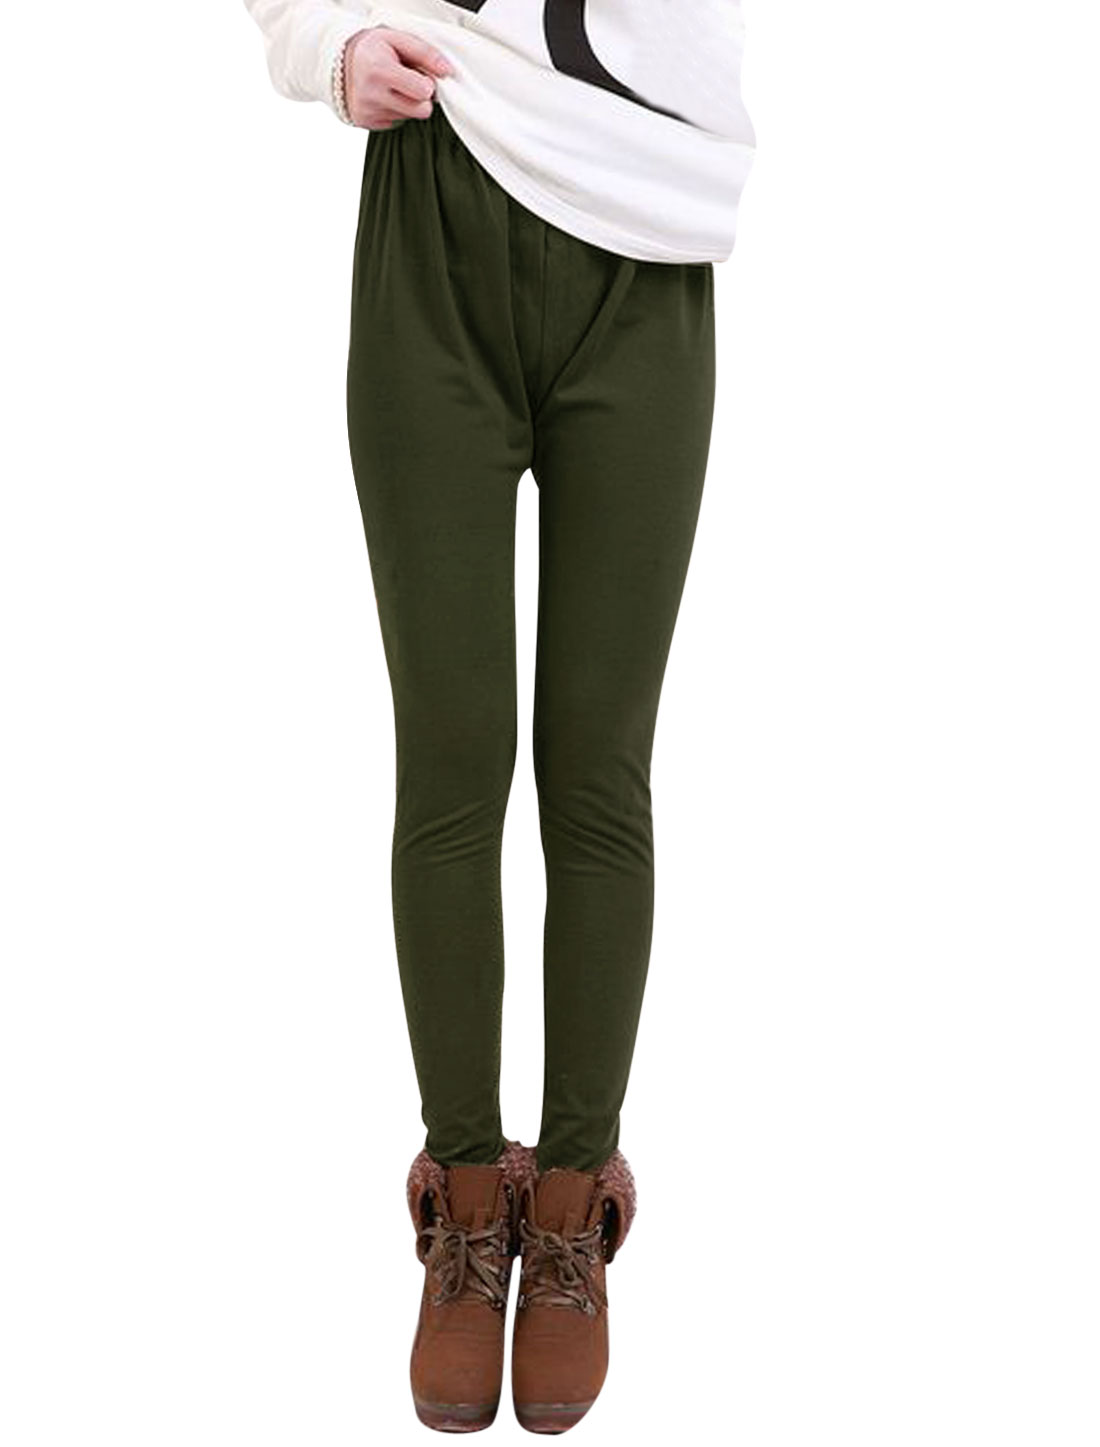 Motherhood Slim Fit Stretchy Waist Pure Design Leggings Army Green XS